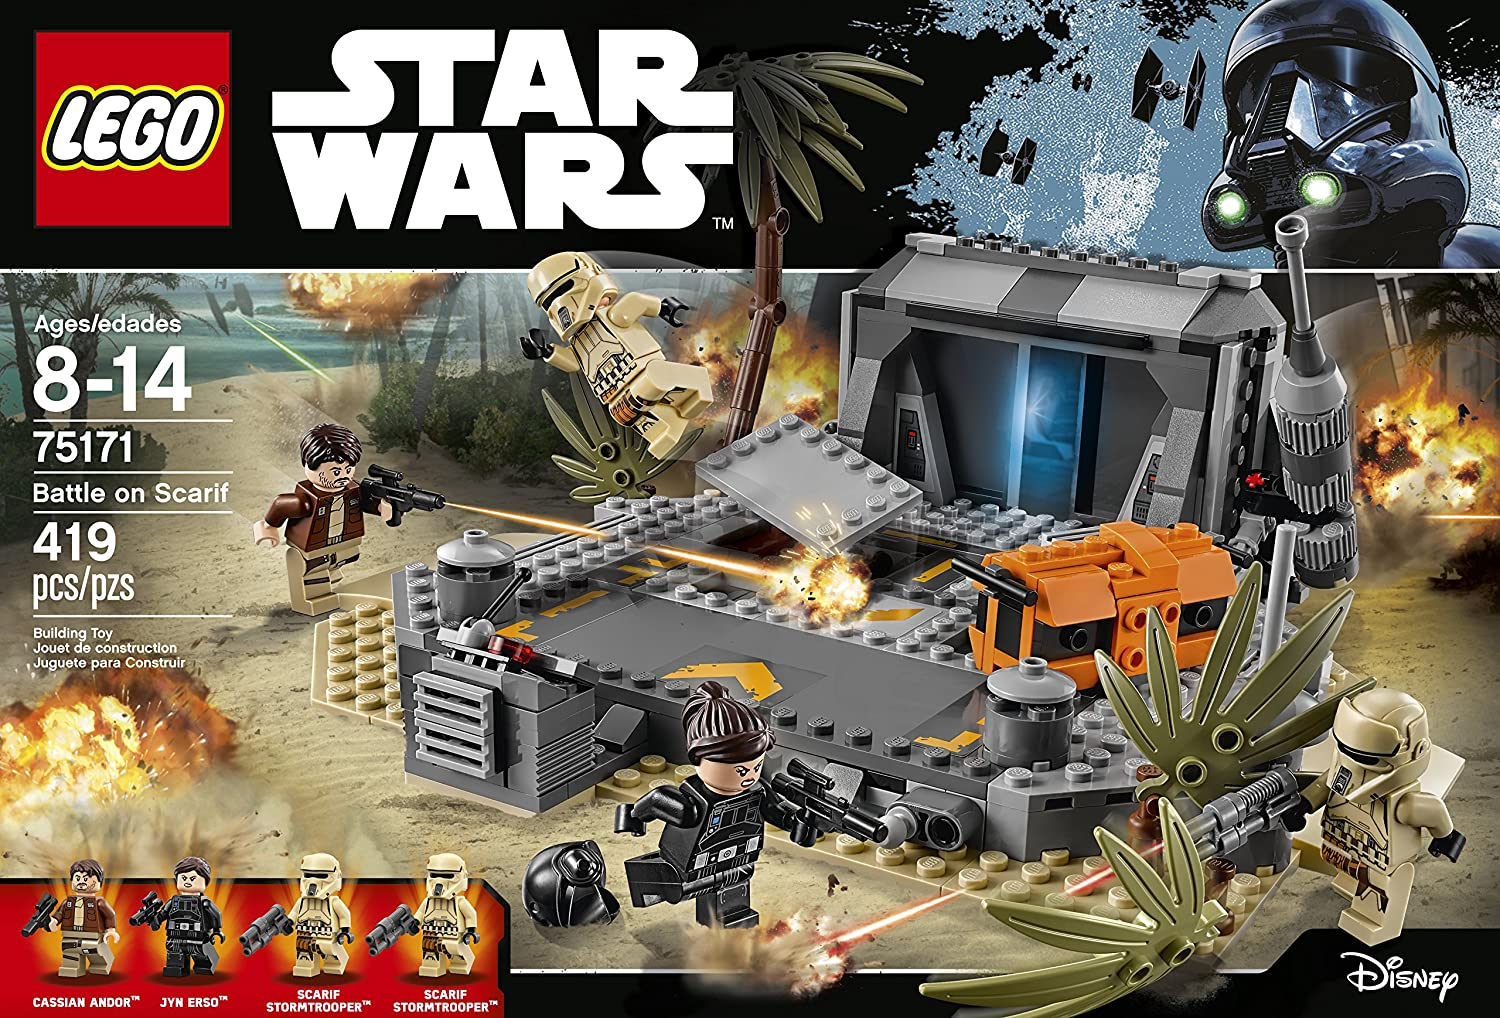 Attention, Lego fans! We've scoured androidmods.ml for the best holiday shopping deals on Lego sets that are space or science-themed, as well as many science-fiction-themed sets.